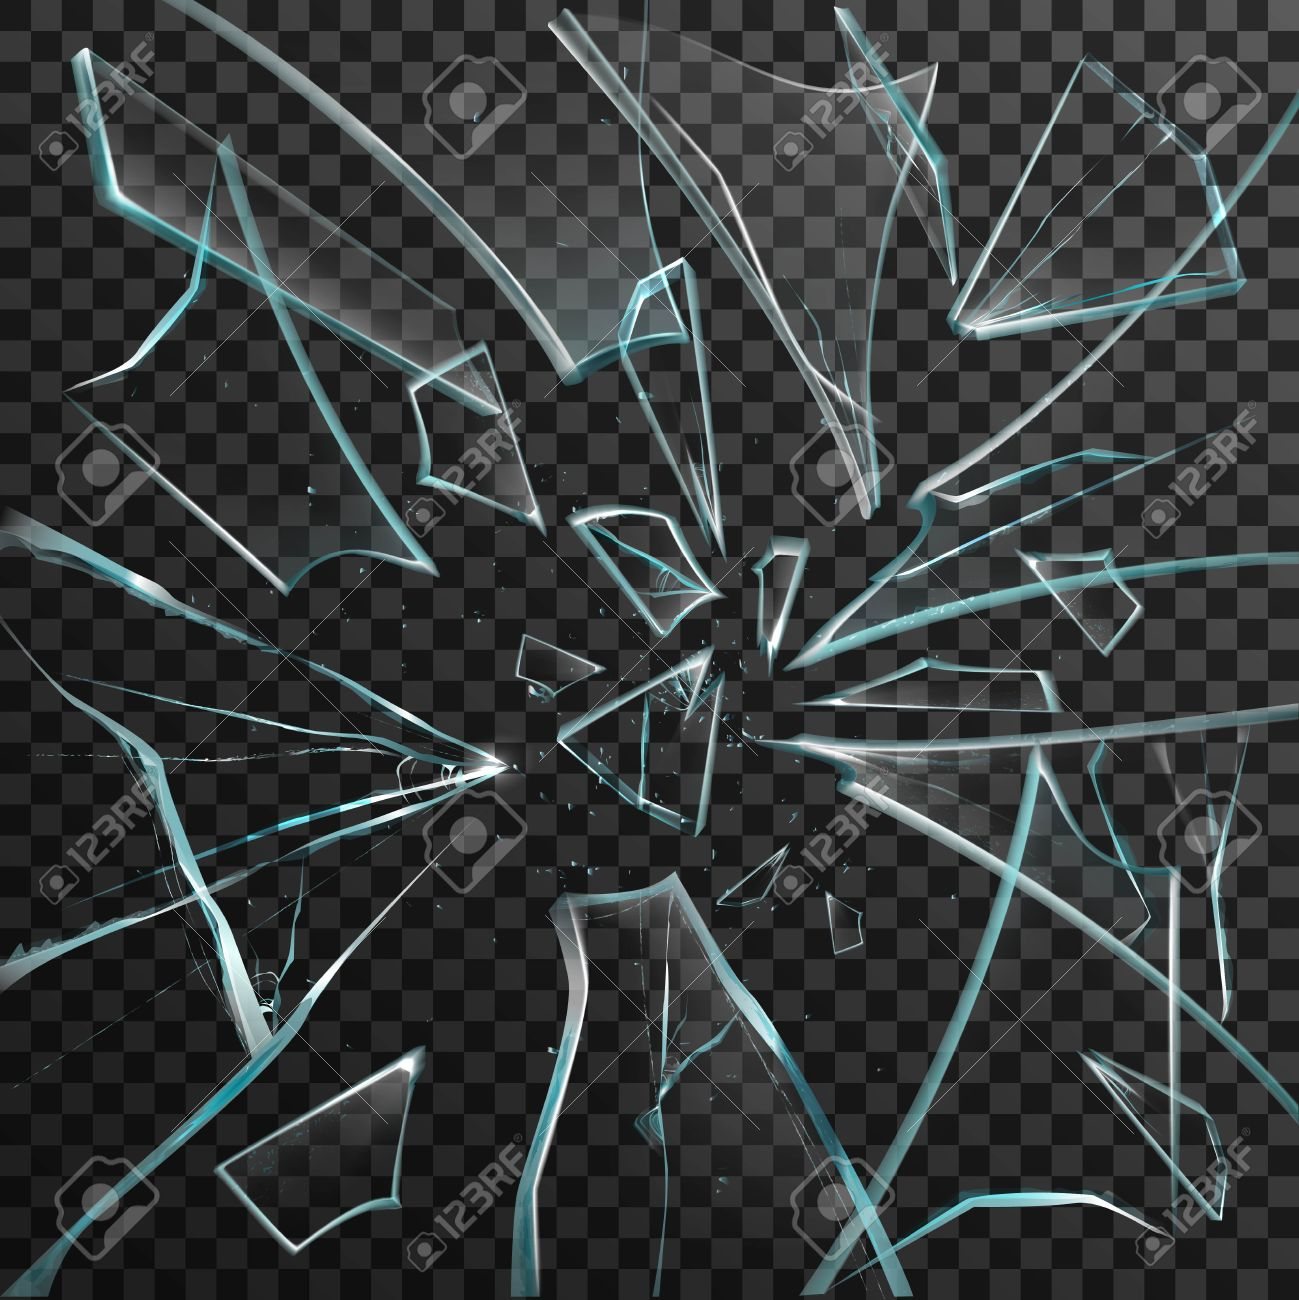 Realistic shards of transparent broken glass on abstract grey and black background vector illustration - 54734649